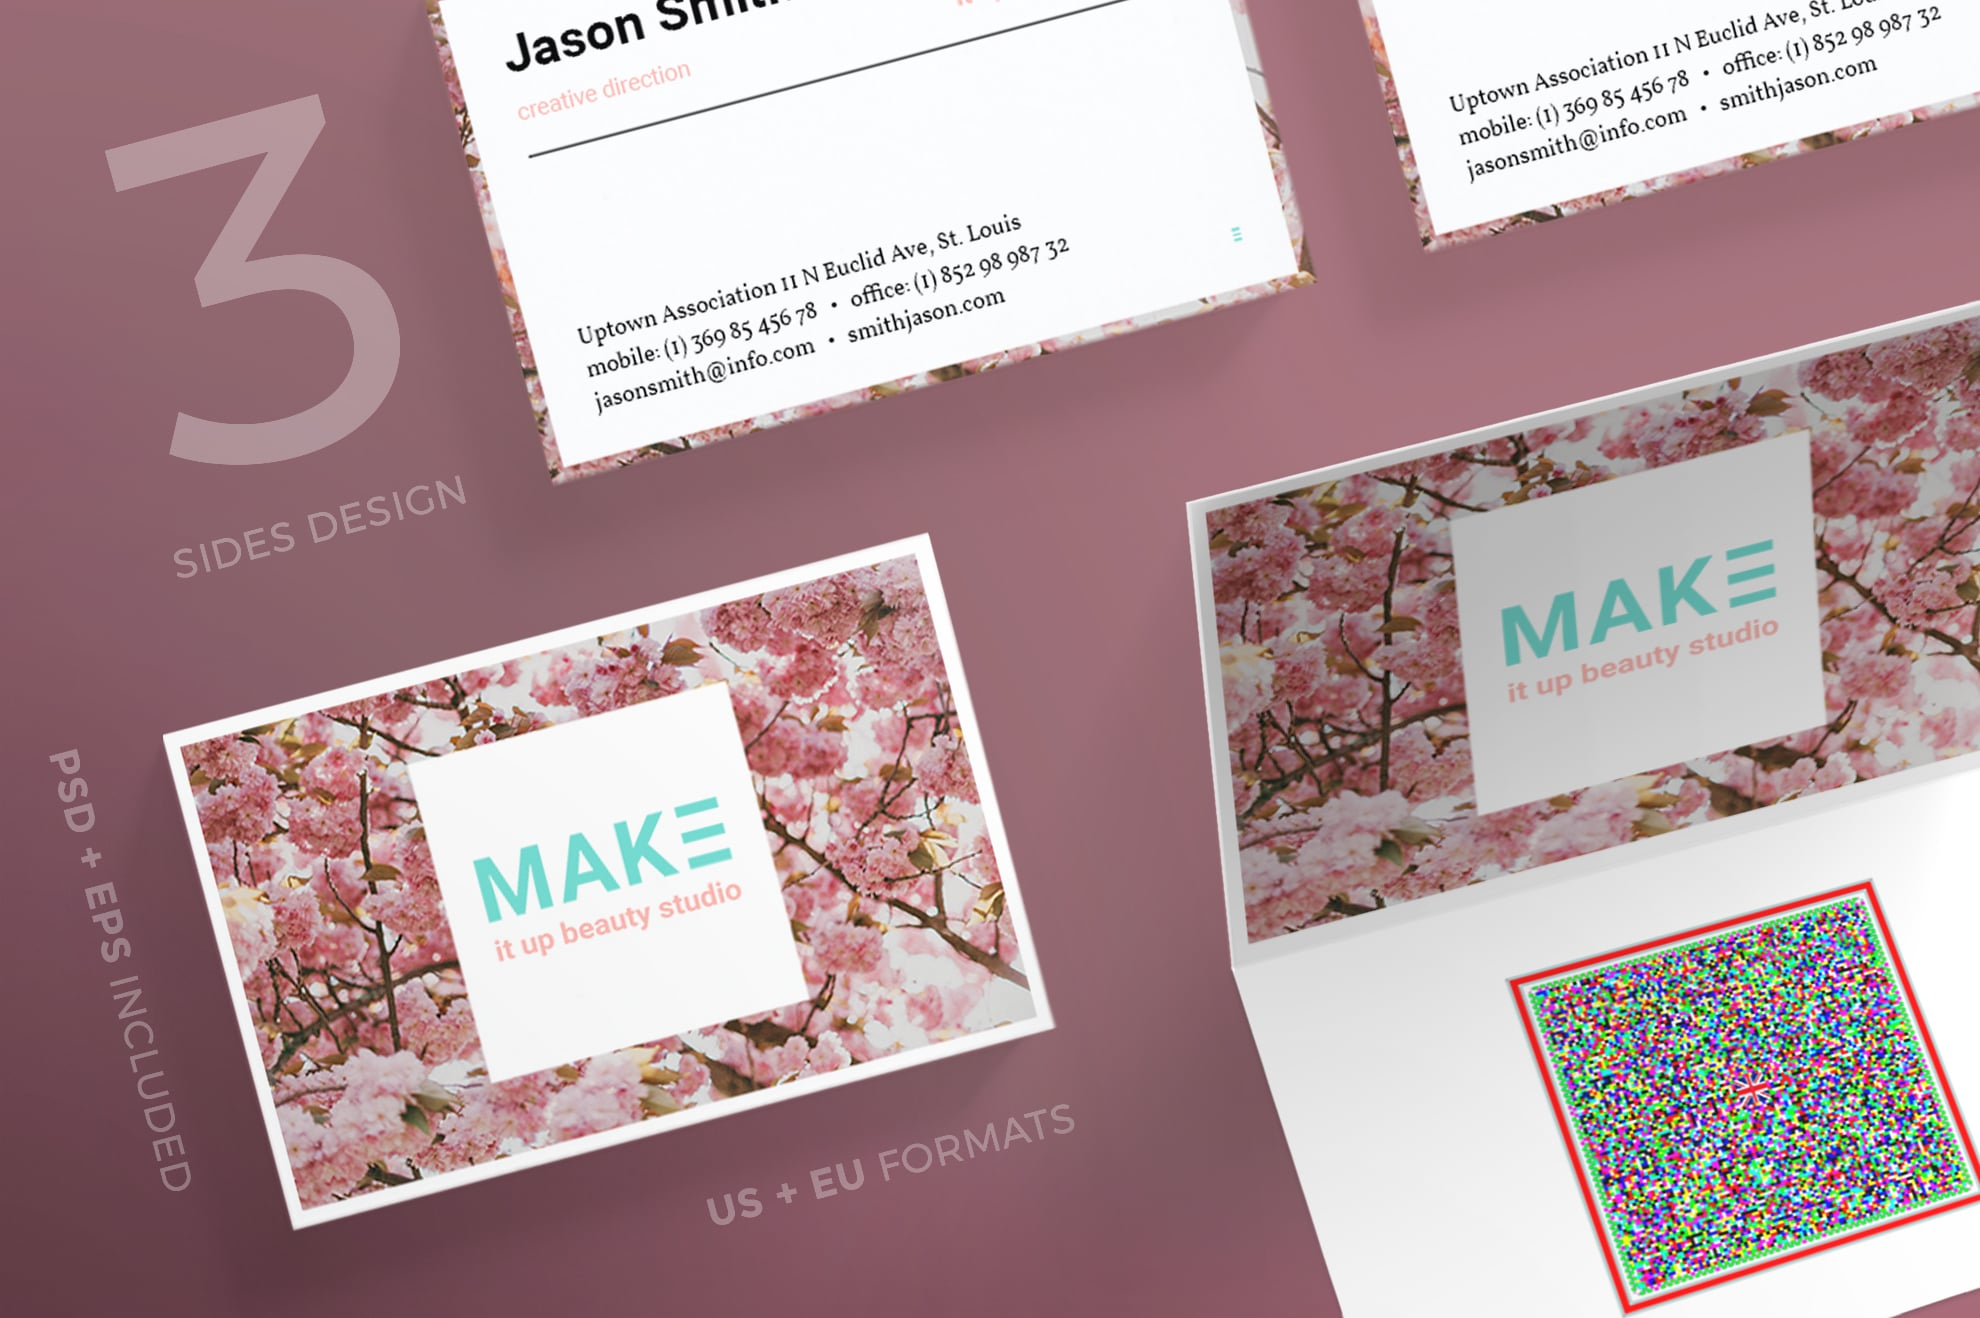 110 in 1 Business Card Bundle - 015 bc make it up beauty 35 0